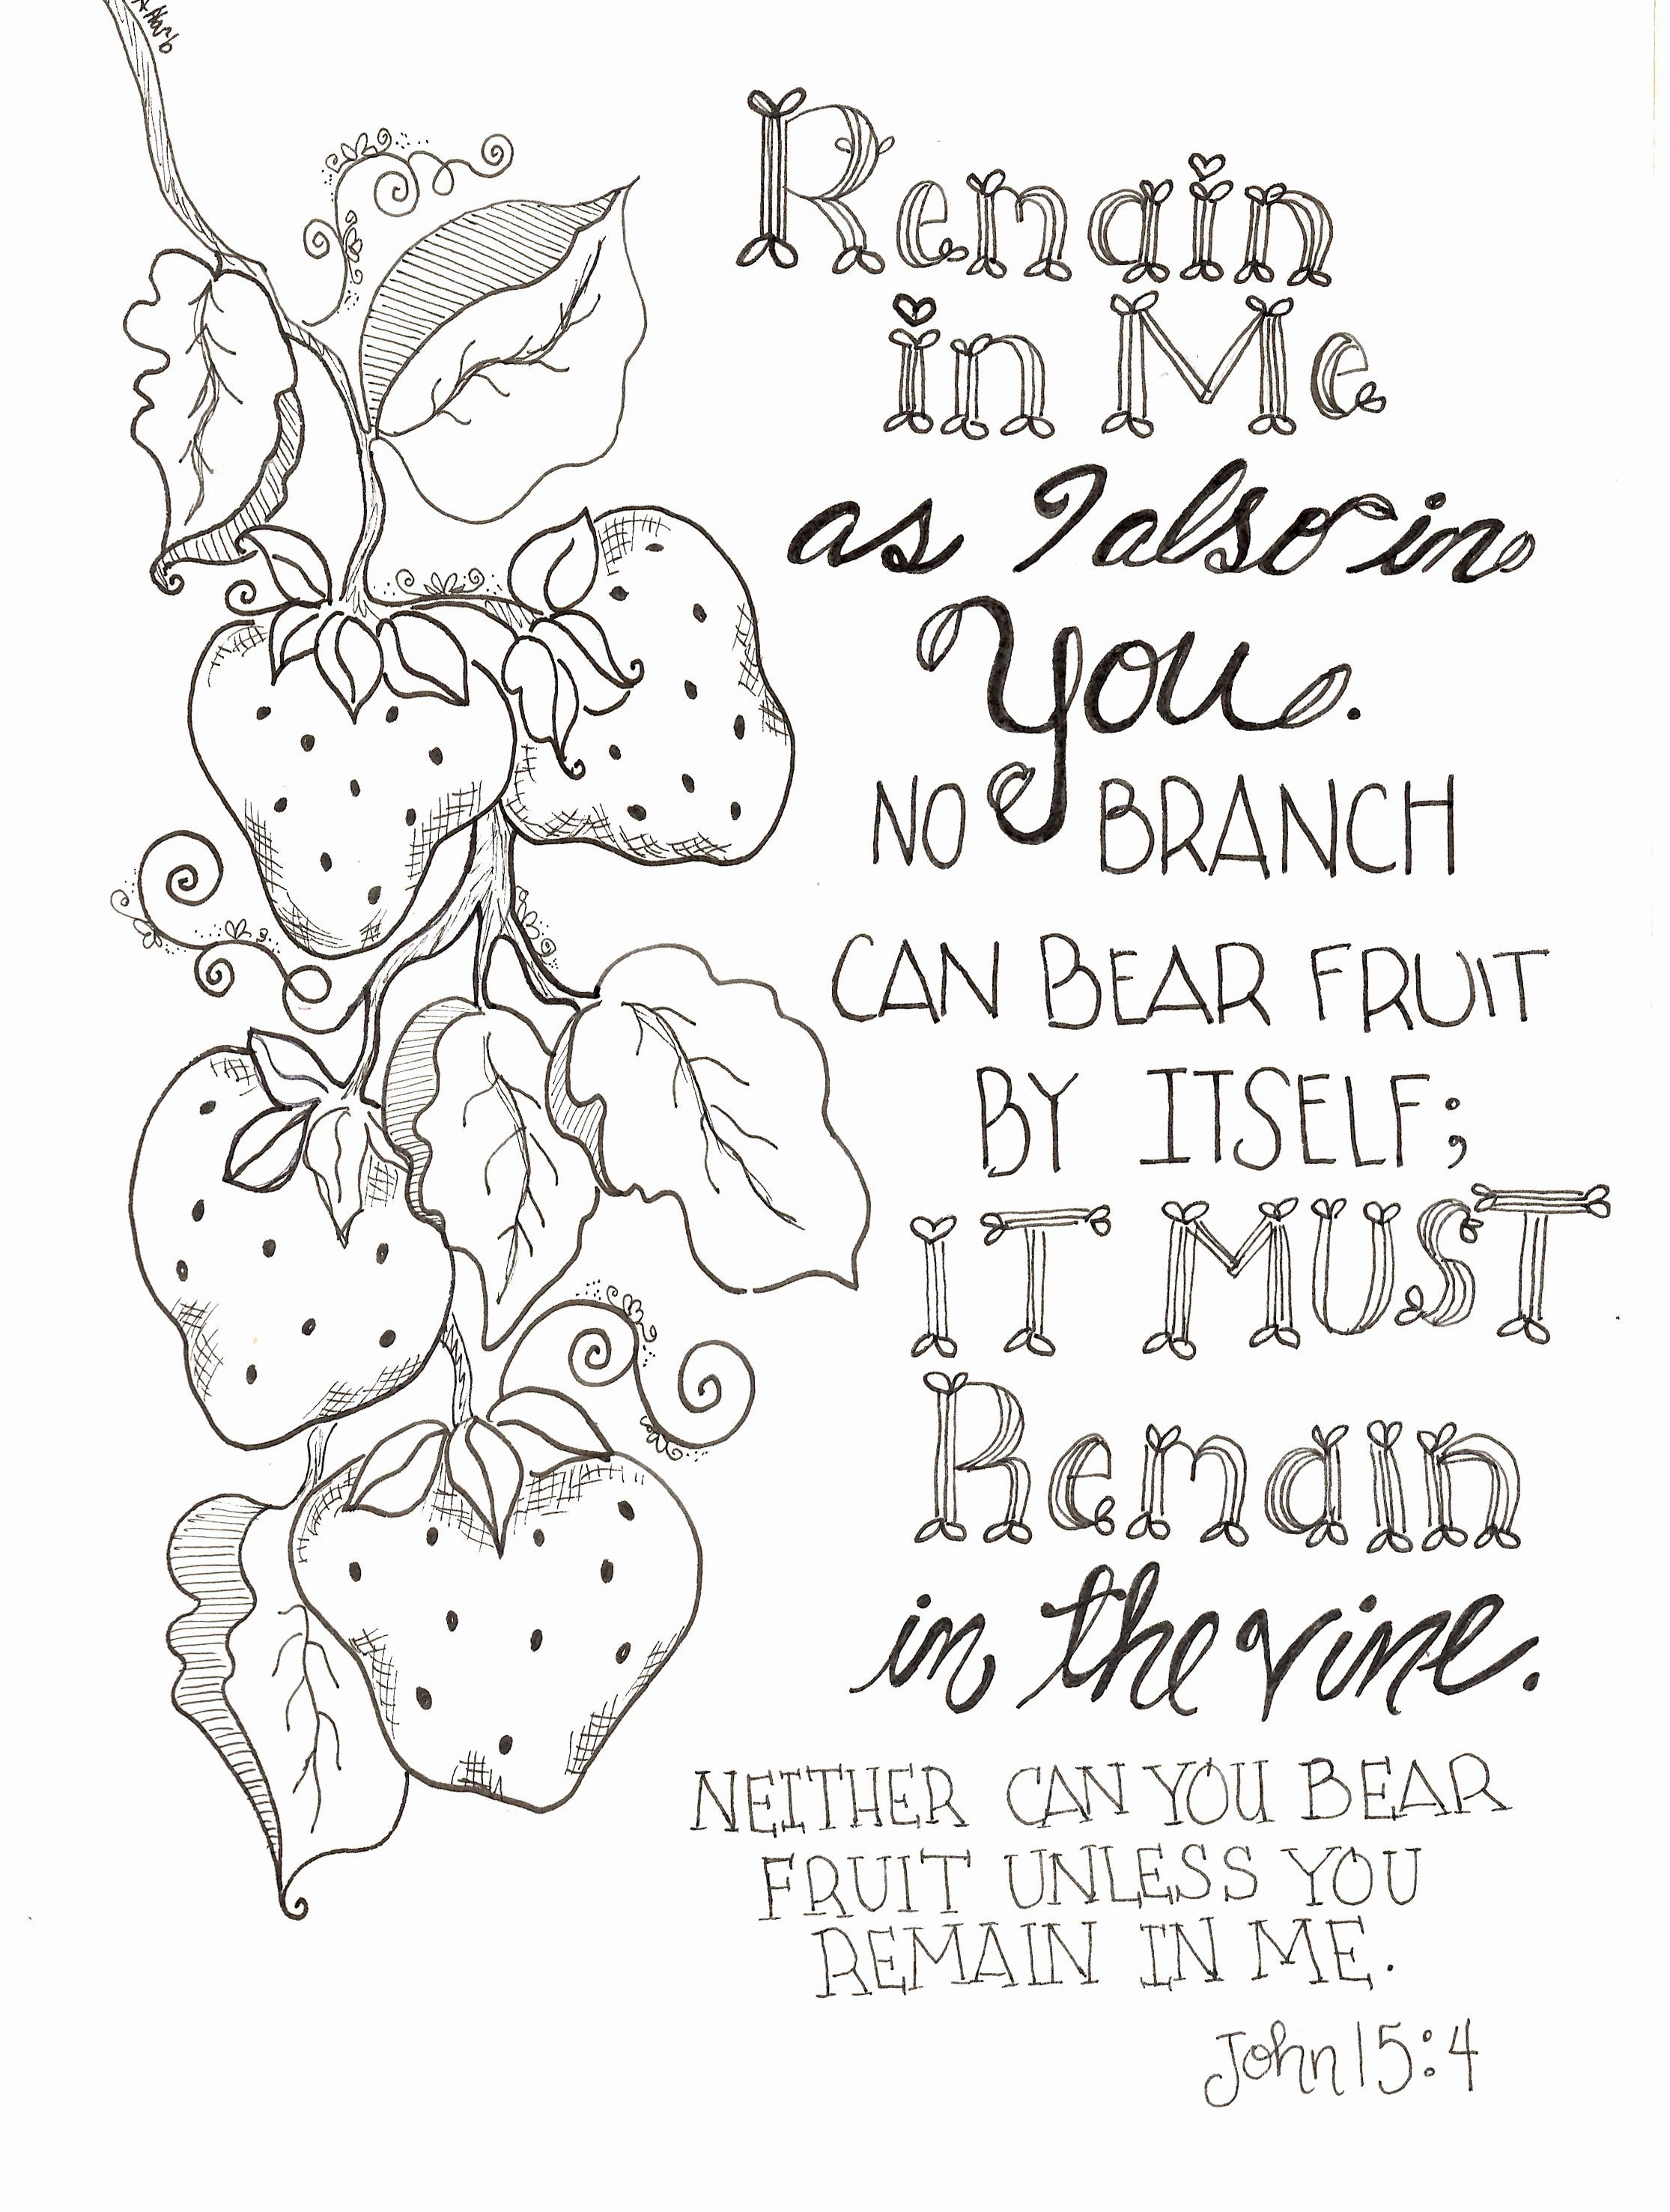 Printable Bible Verse Coloring Pages Fresh How Can I Relieve Stress Stress Illustration Dra Bible Verse Coloring Page Bible Verse Coloring Bible Coloring Pages [ 2953 x 2230 Pixel ]